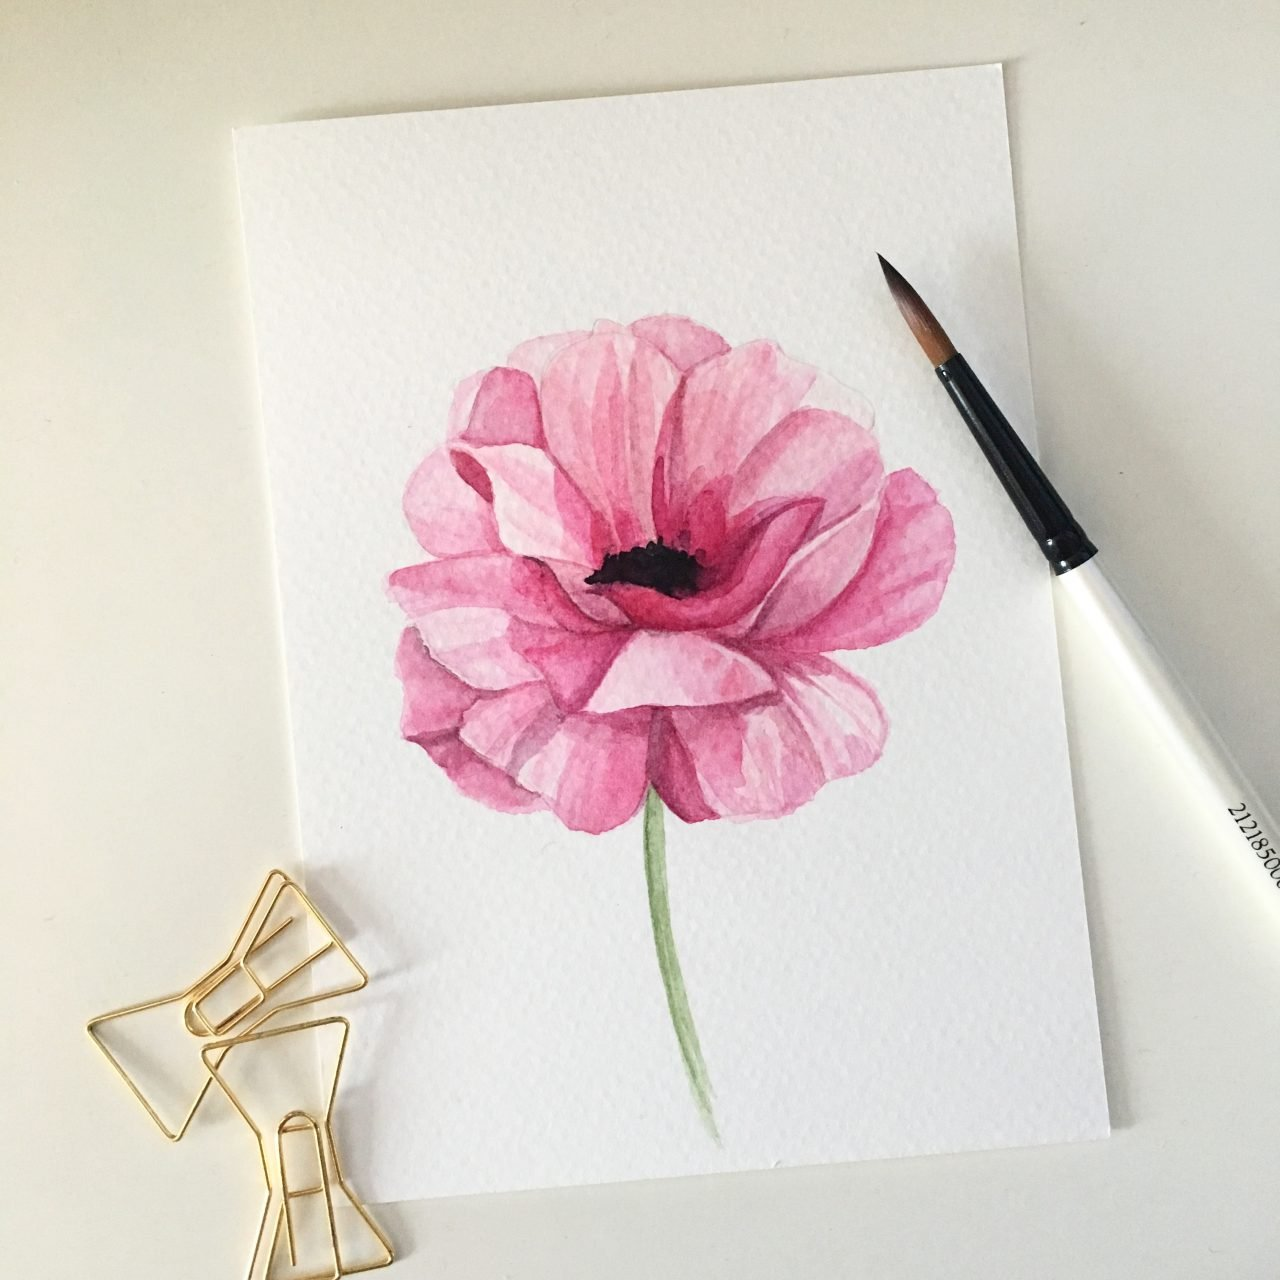 peony practice in watercolor, by patricia alix